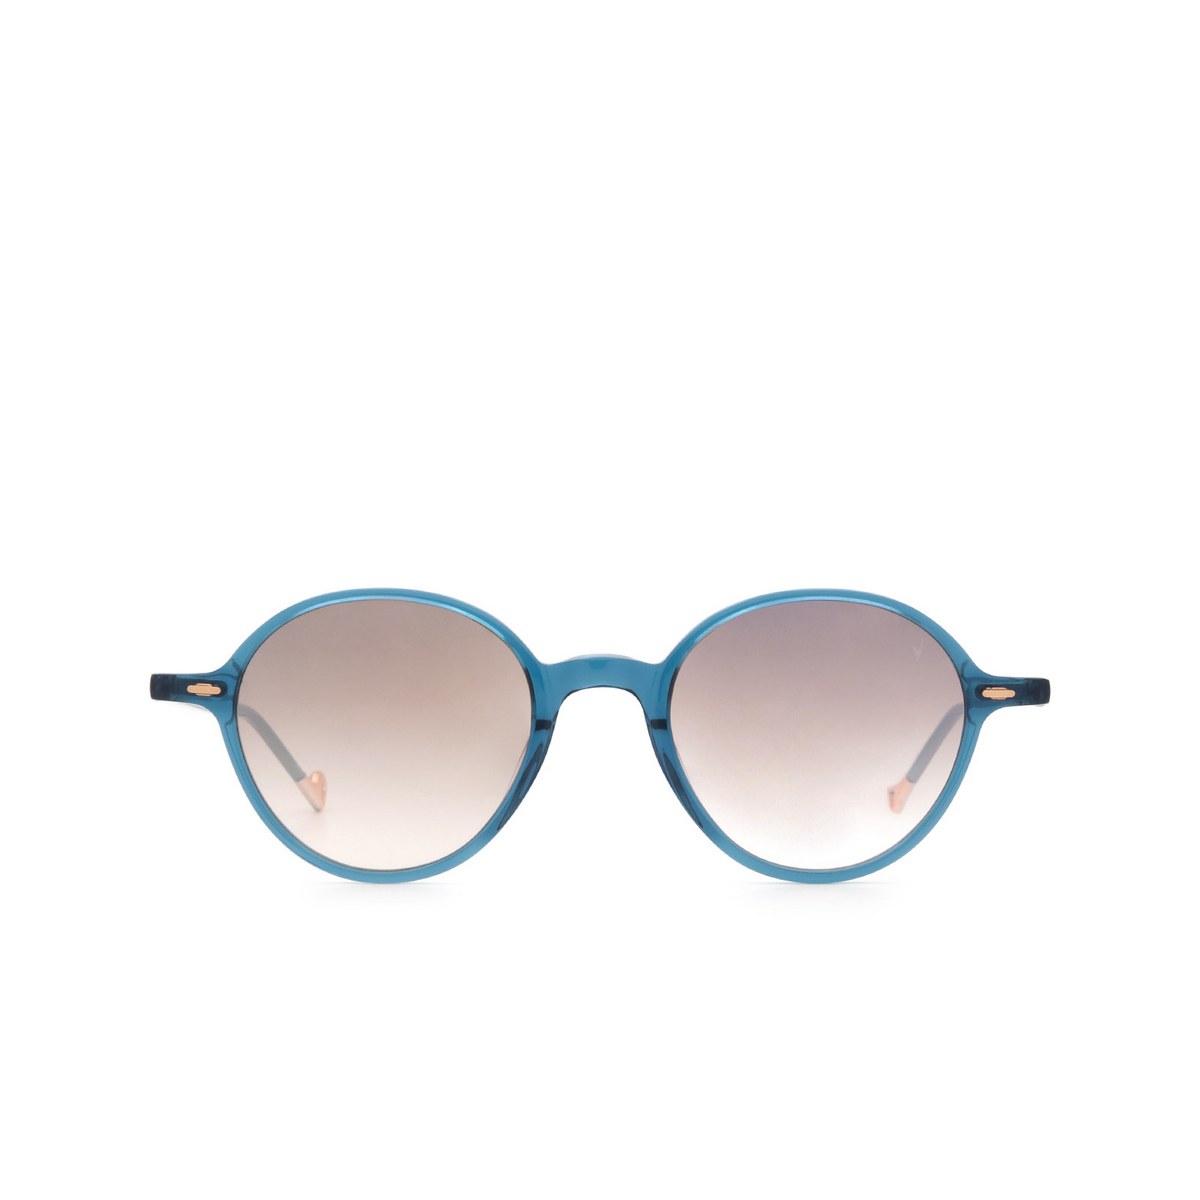 Eyepetizer® Round Sunglasses: Sforza color Blue C.Z-18F - front view.